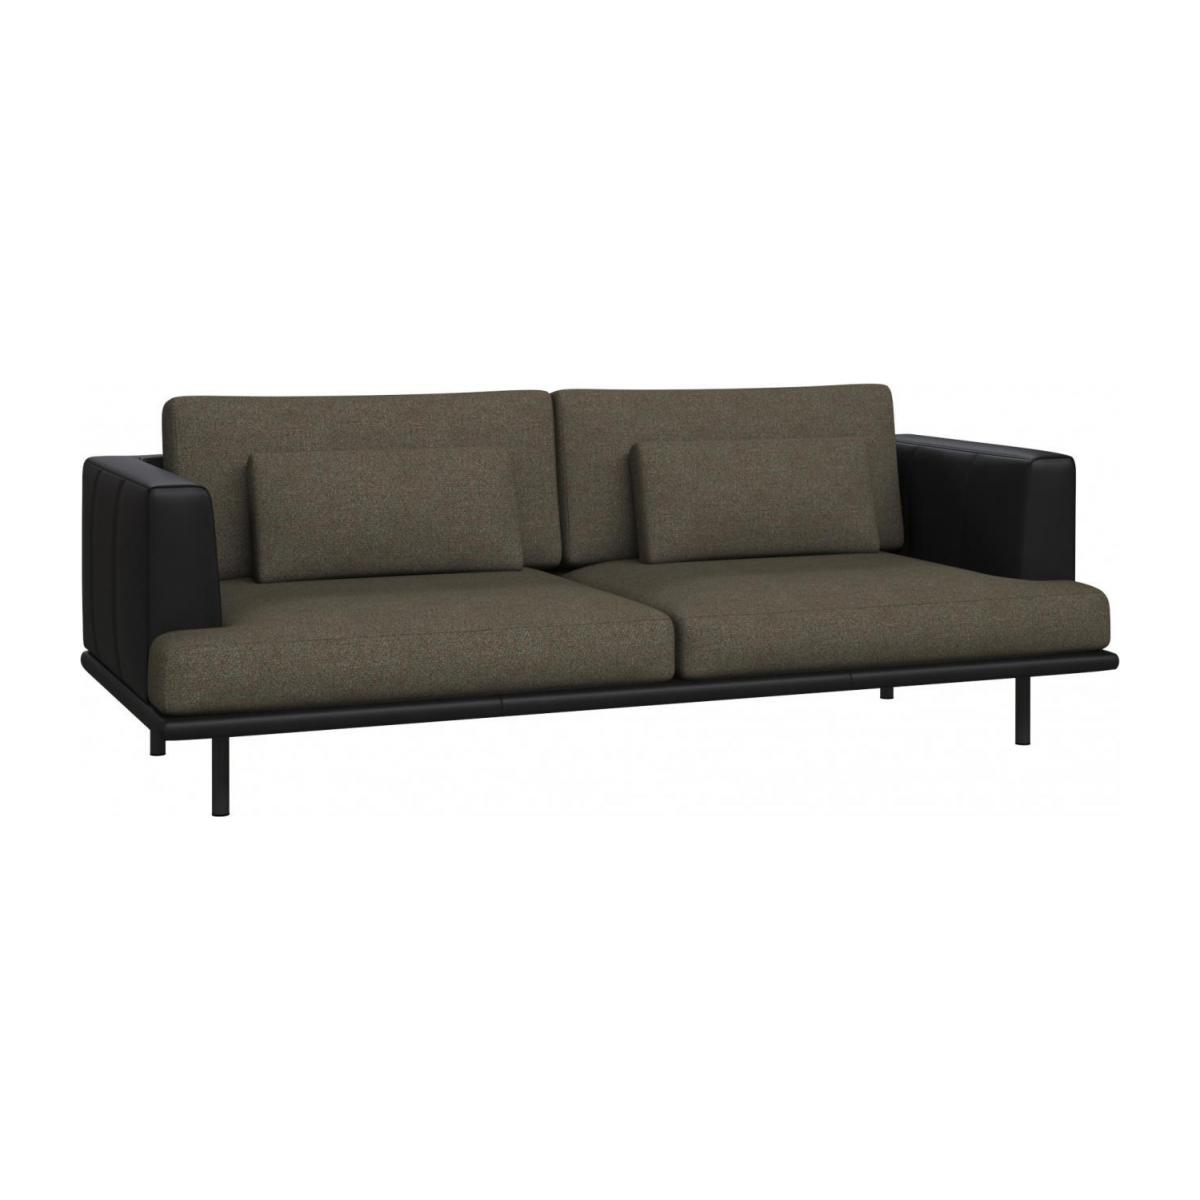 3 seater sofa in Lecce fabric, slade grey with base and armrests in black leather n°1